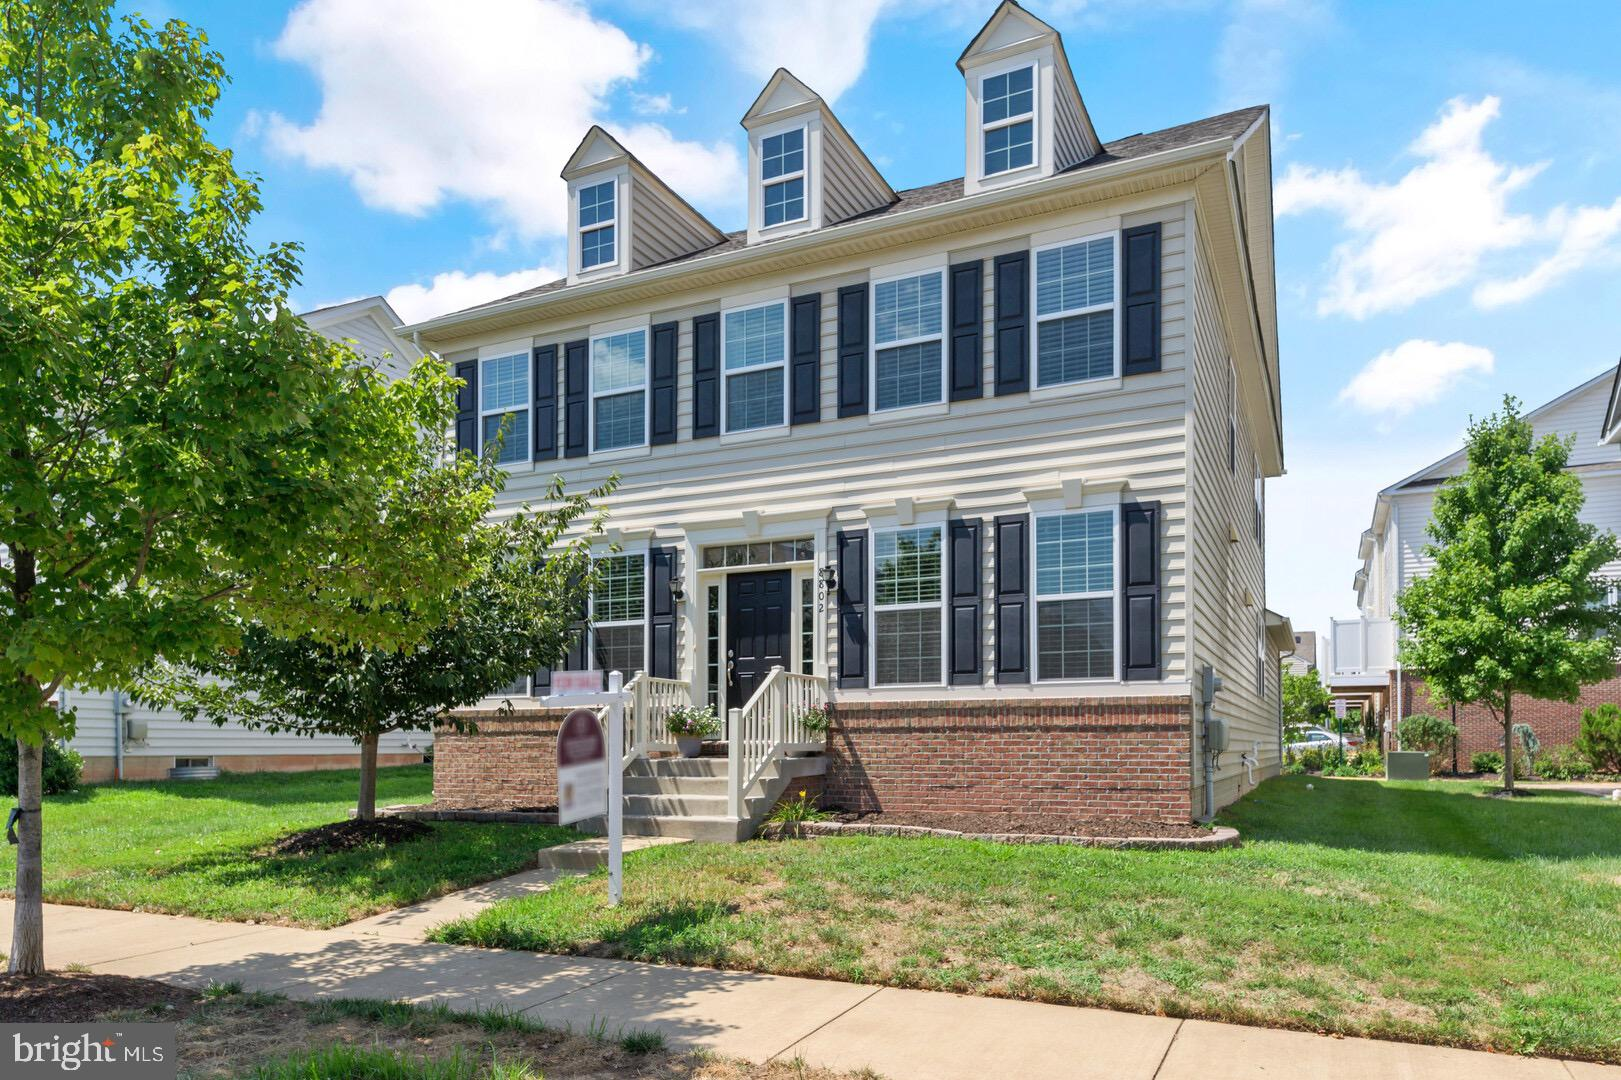 BEAUTIFUL 4 bedroom, 3.5 bathroom home in Hastings Marketplace.  Custom paint, gorgeous new flooring on main level and new carpeting in basement and upstairs! MOVE IN READY!! Very spacious kitchen with large eat-in space that opens to a large light filled family room. The upper stairs has great size bedrooms all with walk-in closets! Entertain in the oversized open basement  with full bathroom.  Very close proximity to the Parkway, 66, shopping centers and more! Don't Miss Out!!